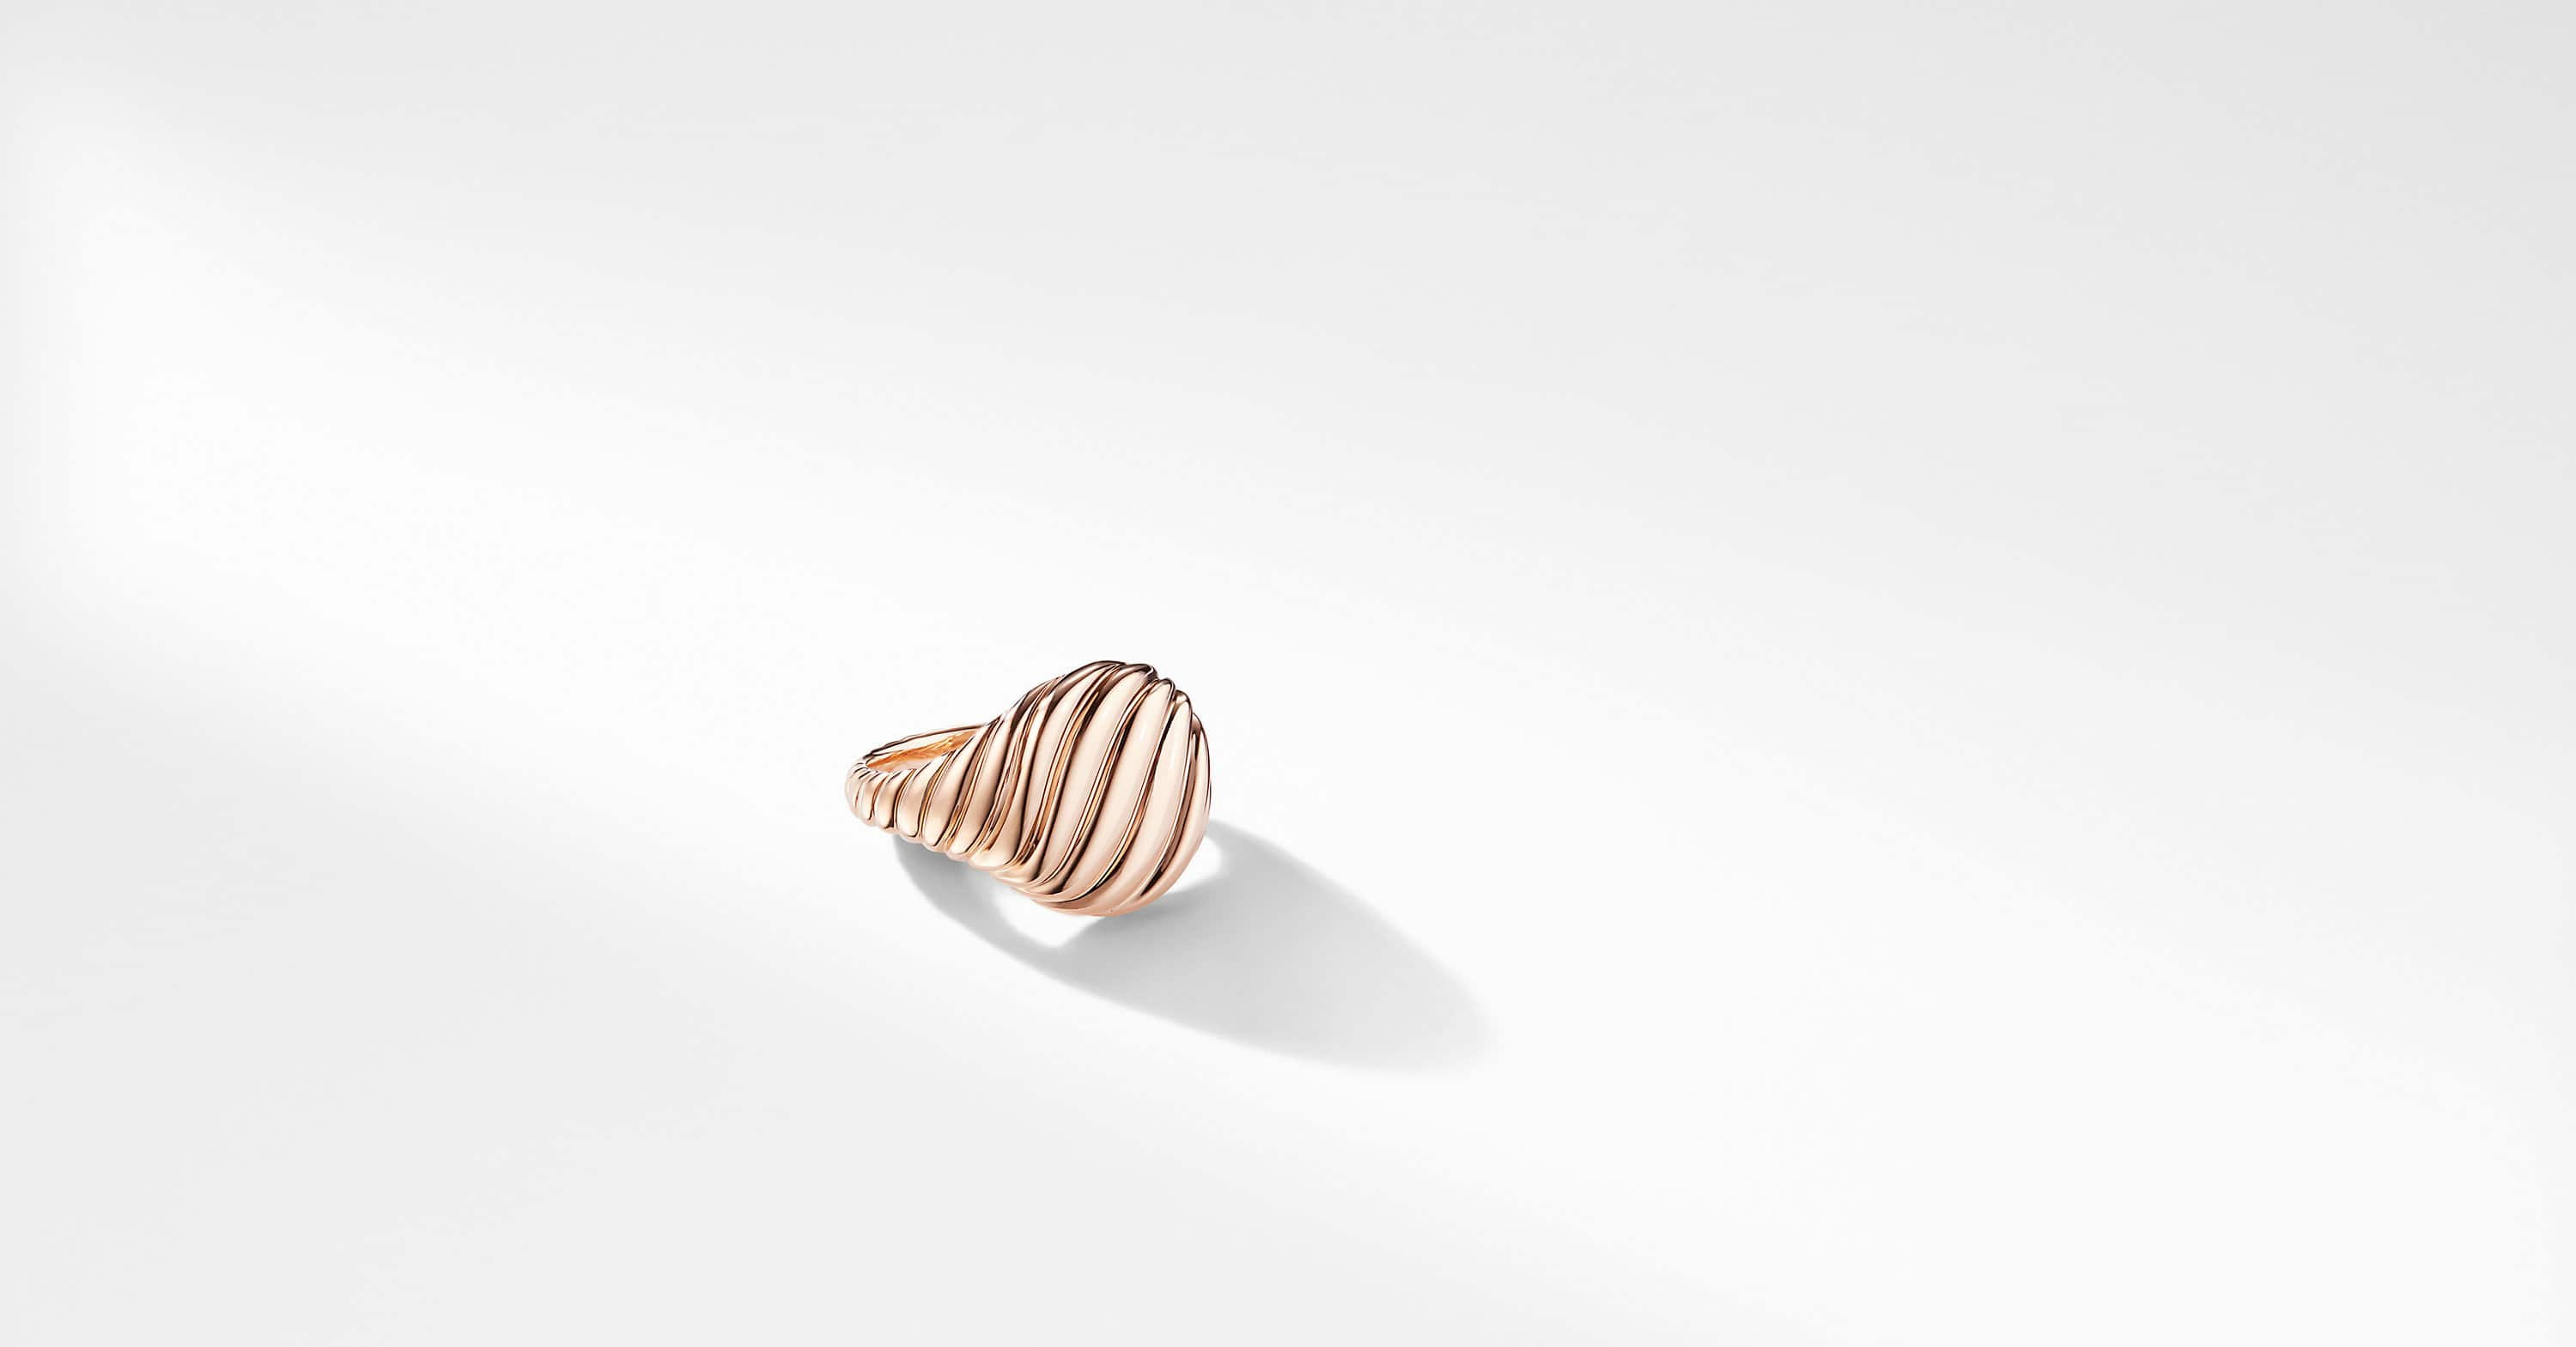 Sculpted Cable Pinky Ring in Rose 18K Gold